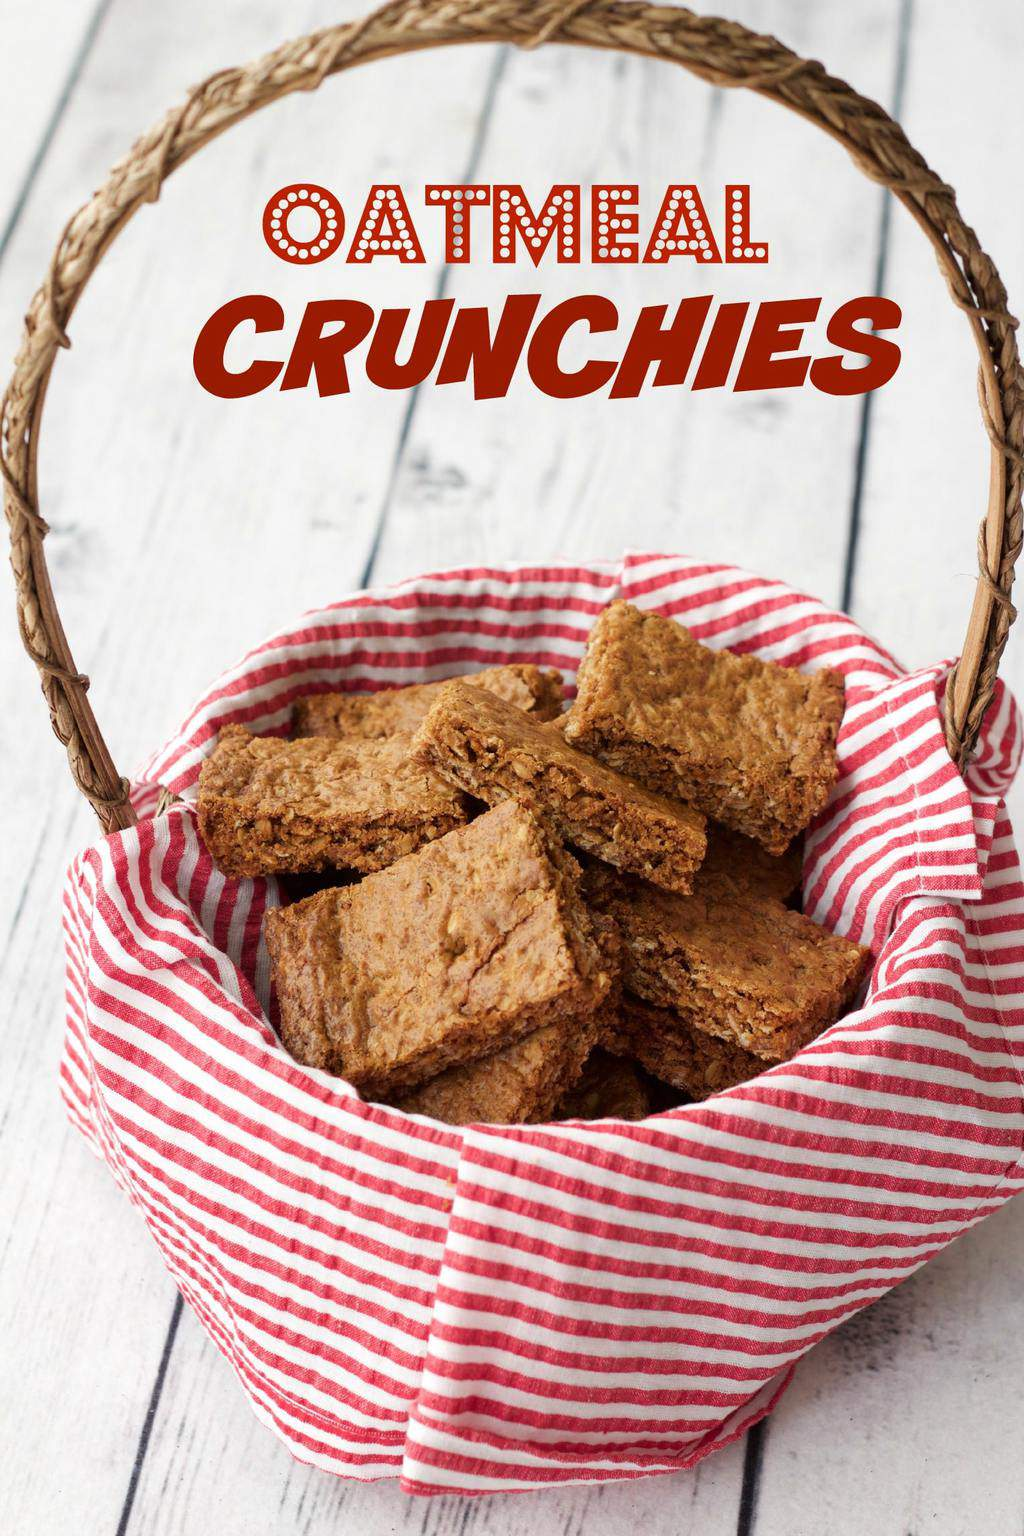 Hearty and wholesome South African Oatmeal Crunchies. Similar to vegan oatmeal cookies, but crunchier! #vegan #lovingitvegan #dairyfree #cookies